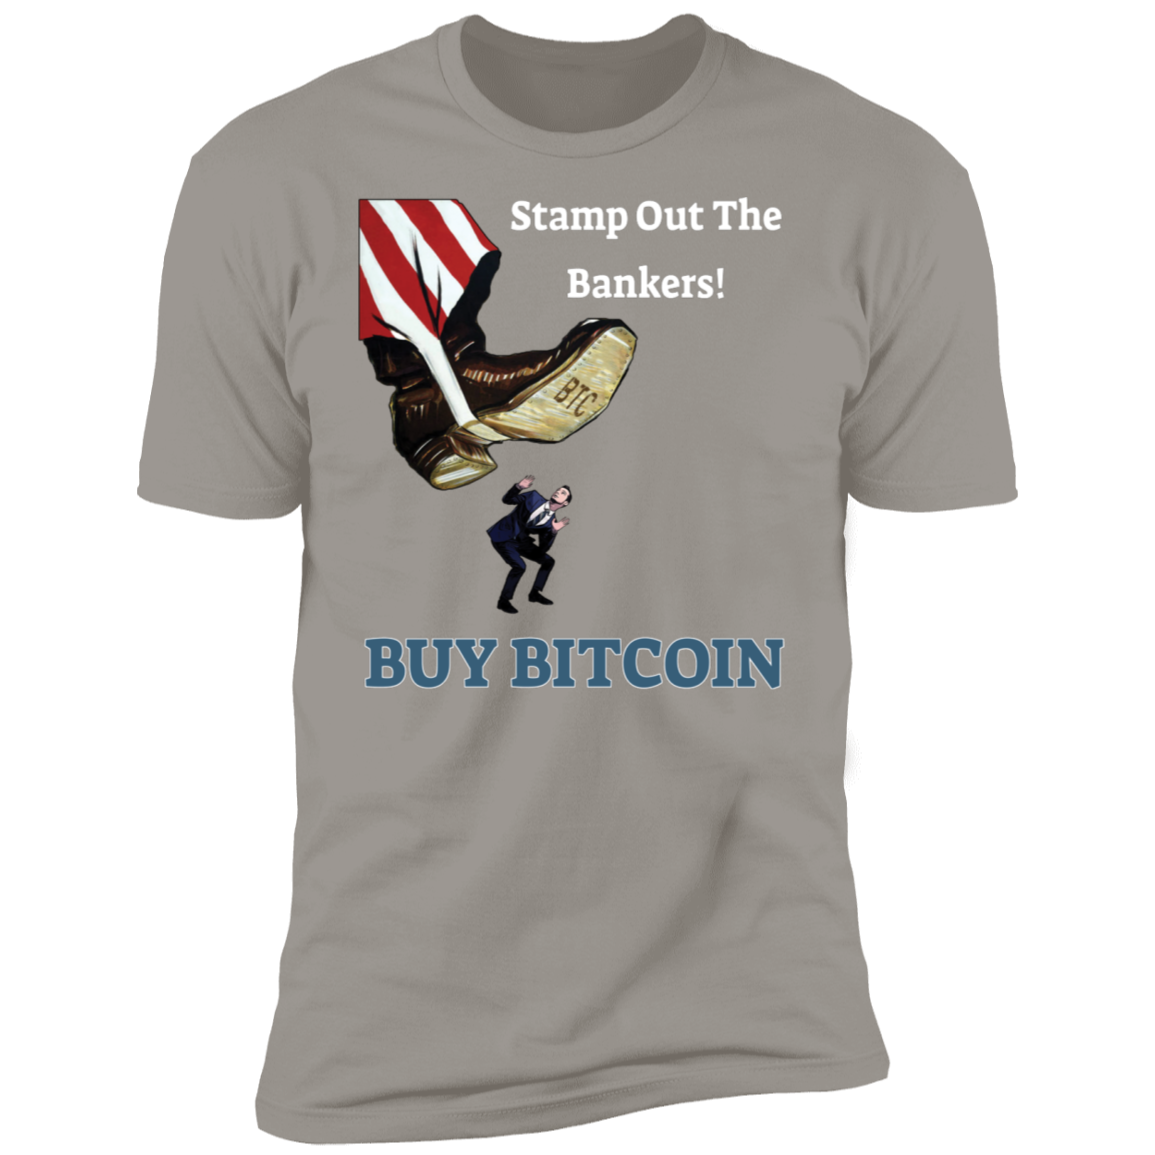 Bitcoin T shirt Light Grey / X-Small Stamp Out The Bankers T-Shirt